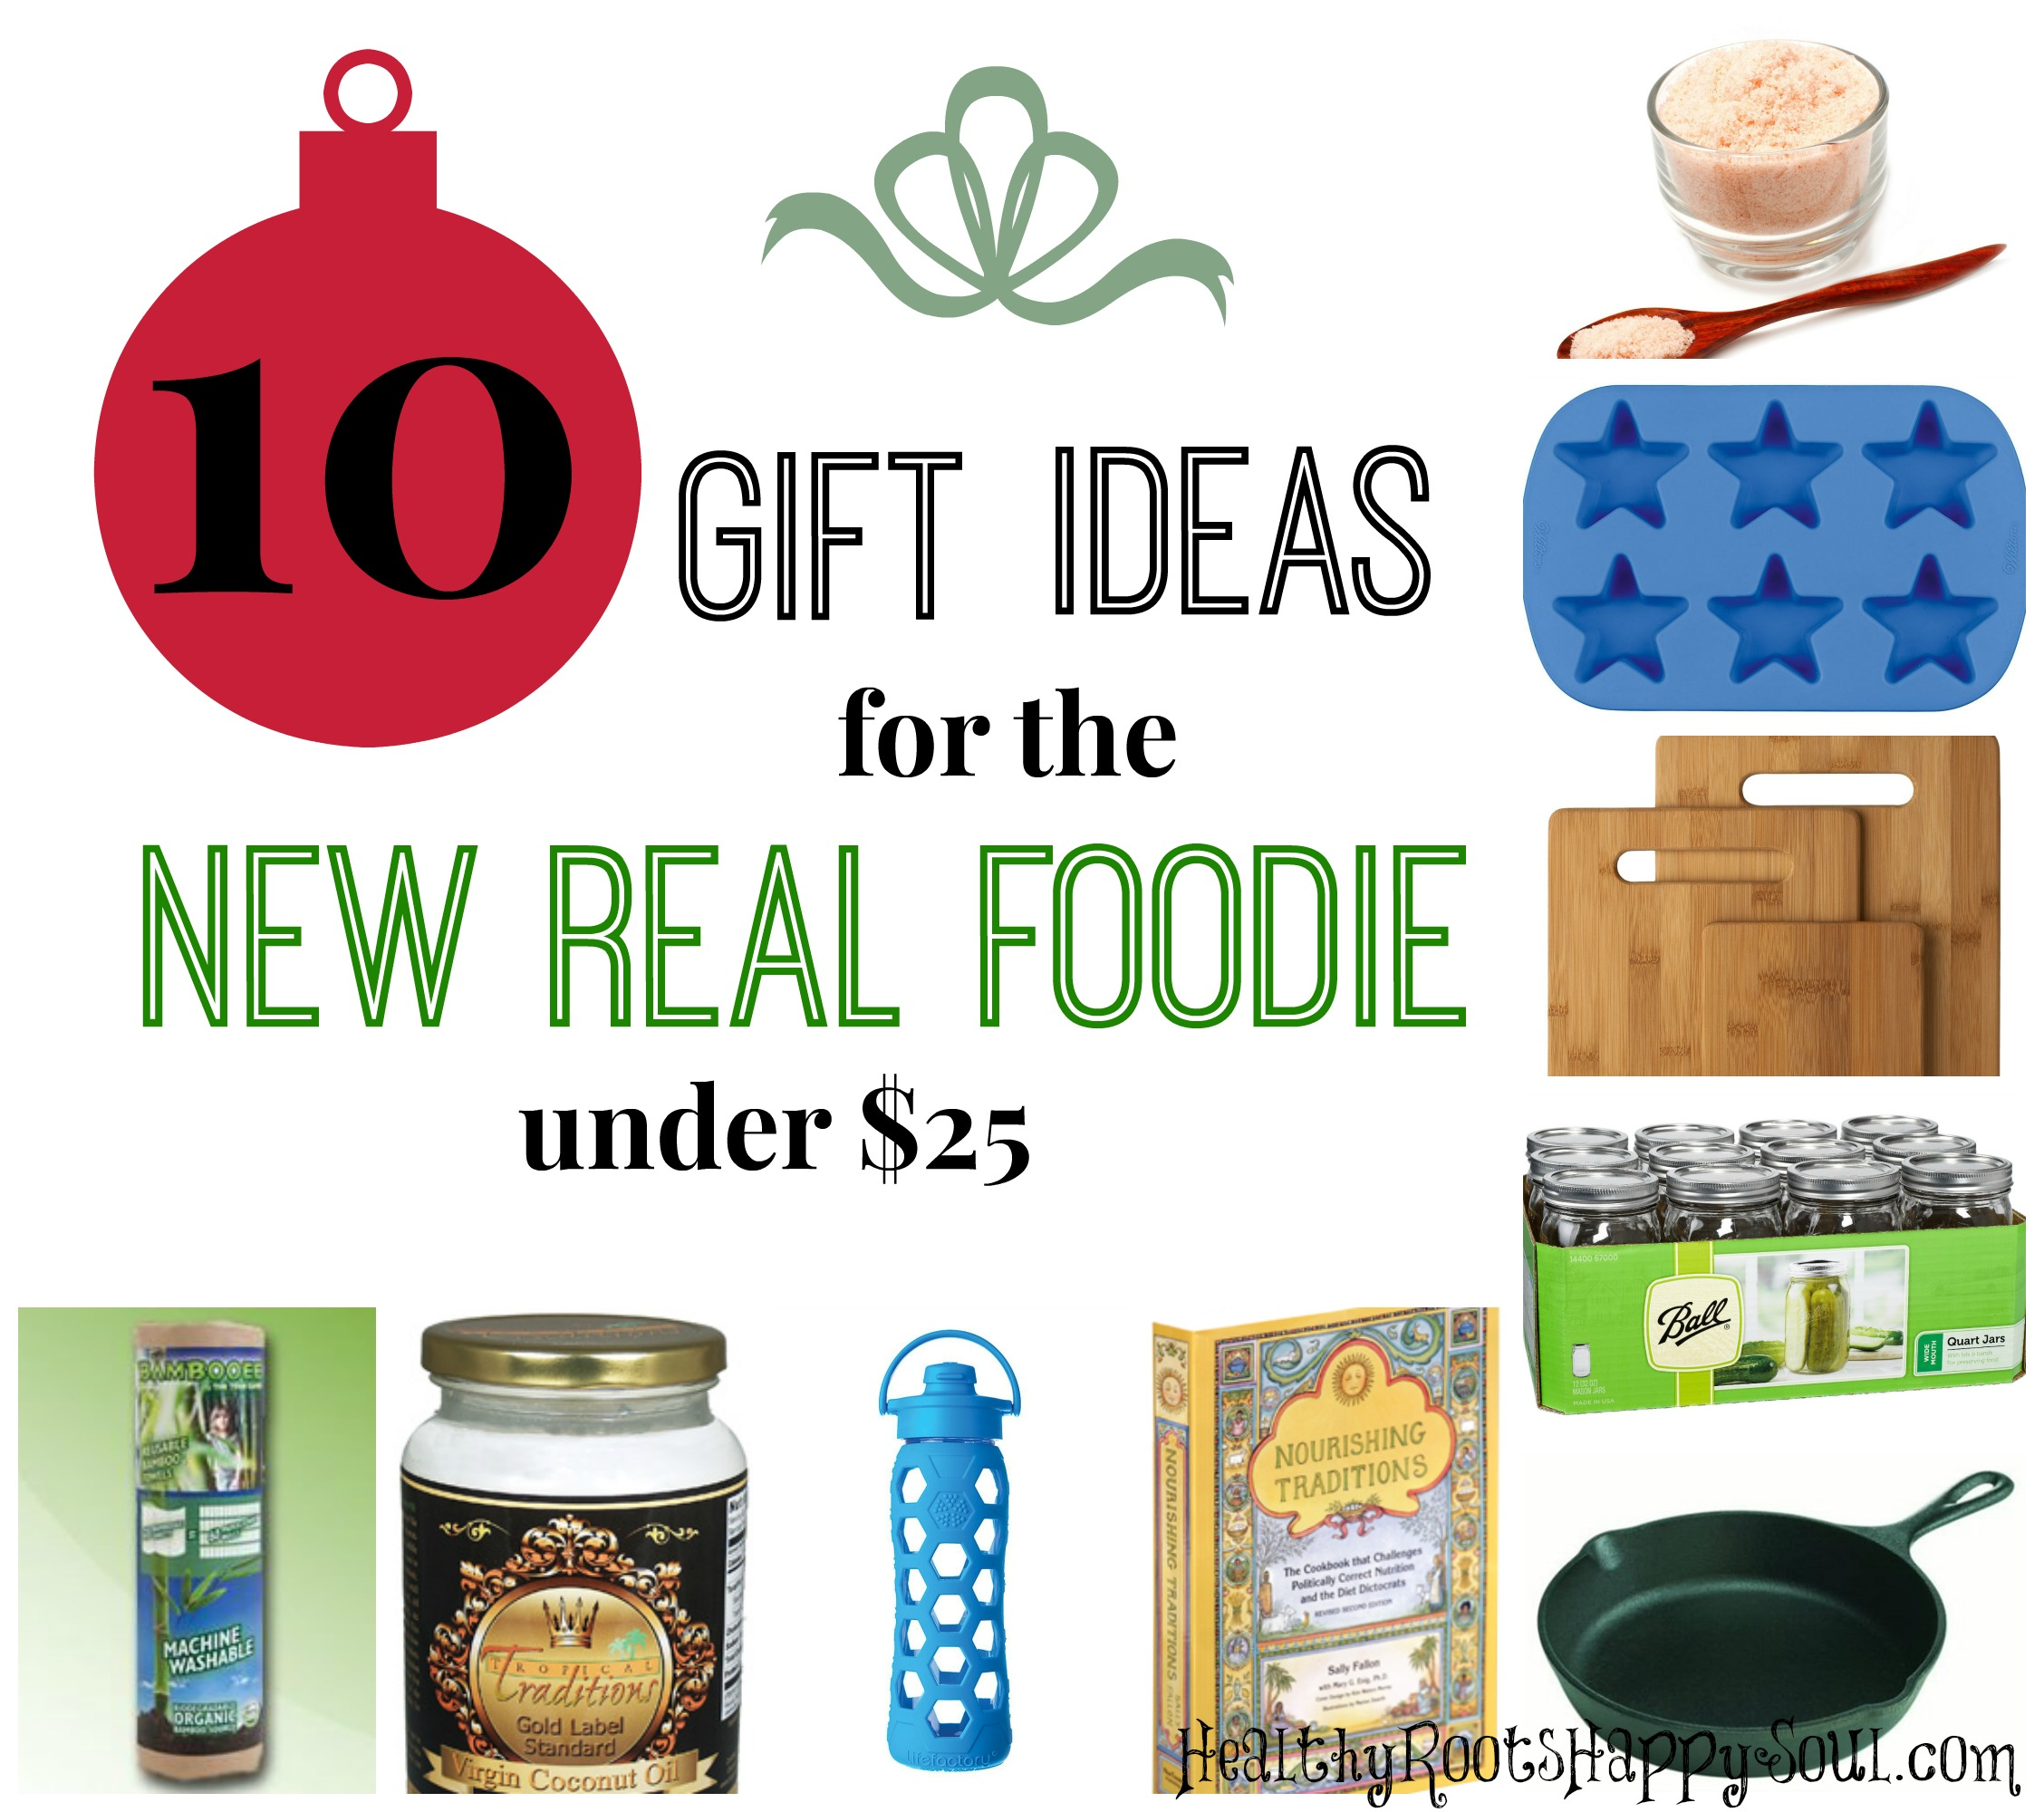 Naturally loriel 10 gift ideas for the new real foodie 25 uni christmas gift ideas